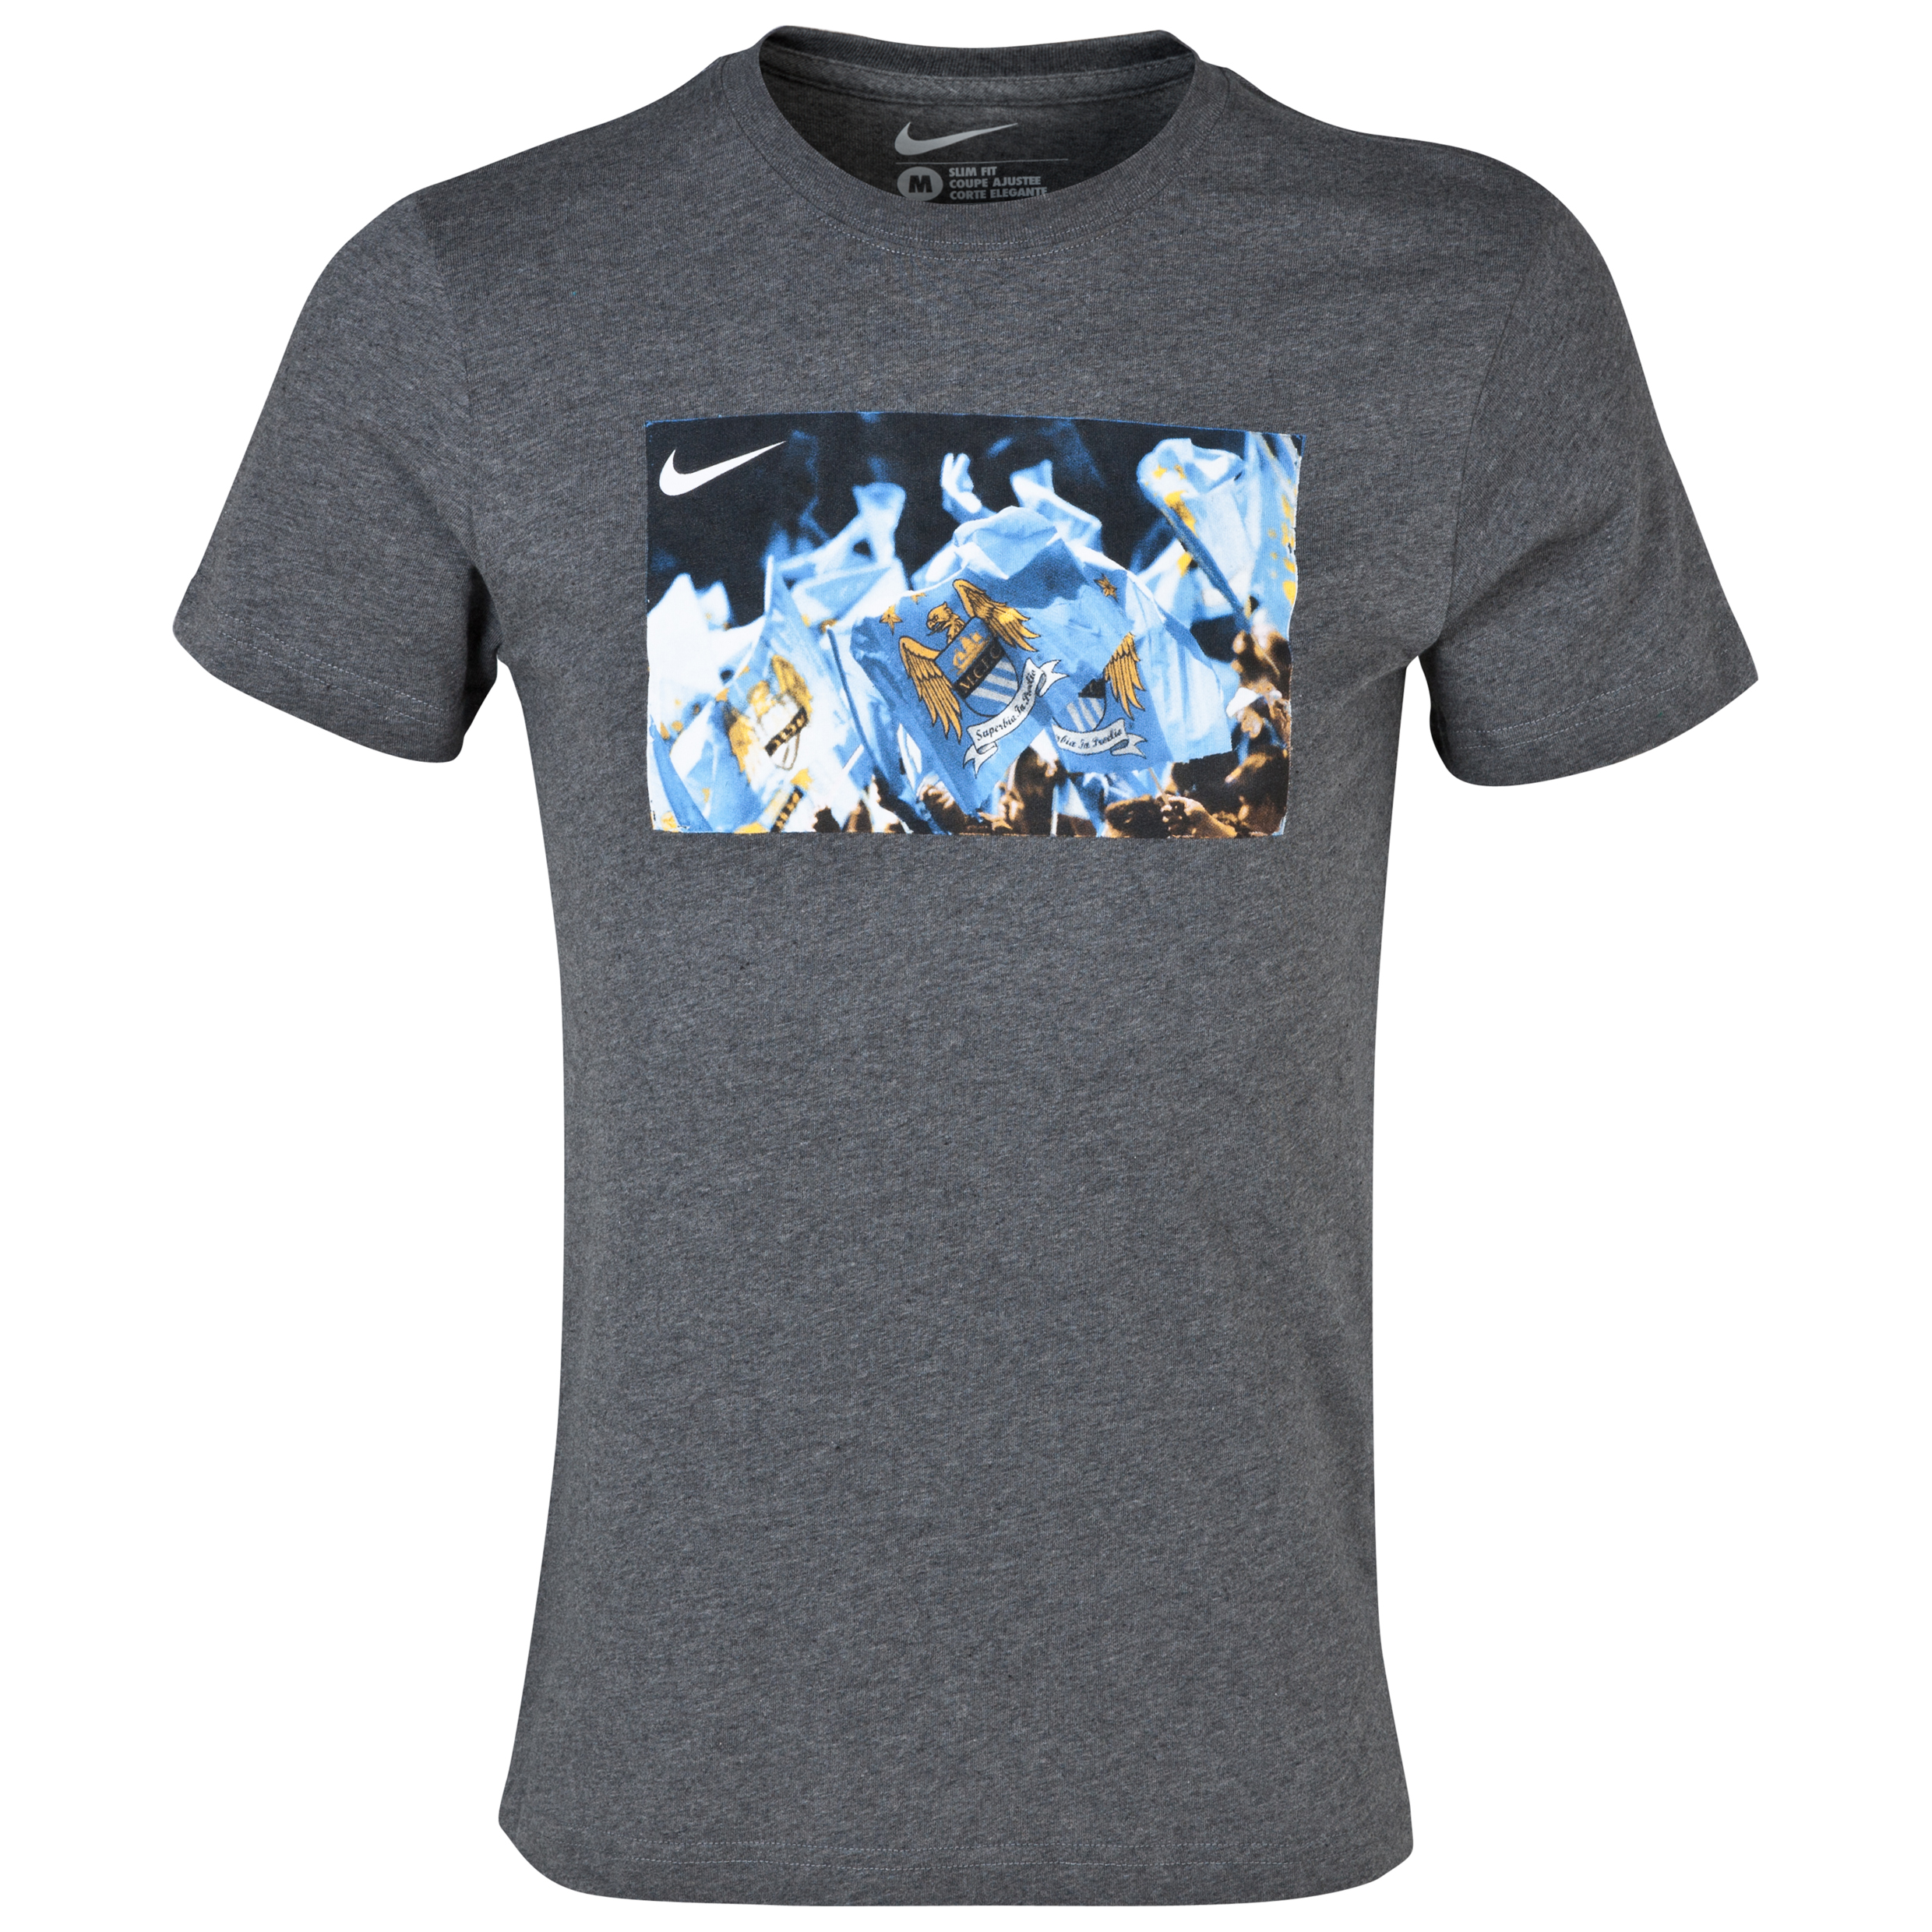 Manchester City Core Plus T-Shirt - Mens Charcoal